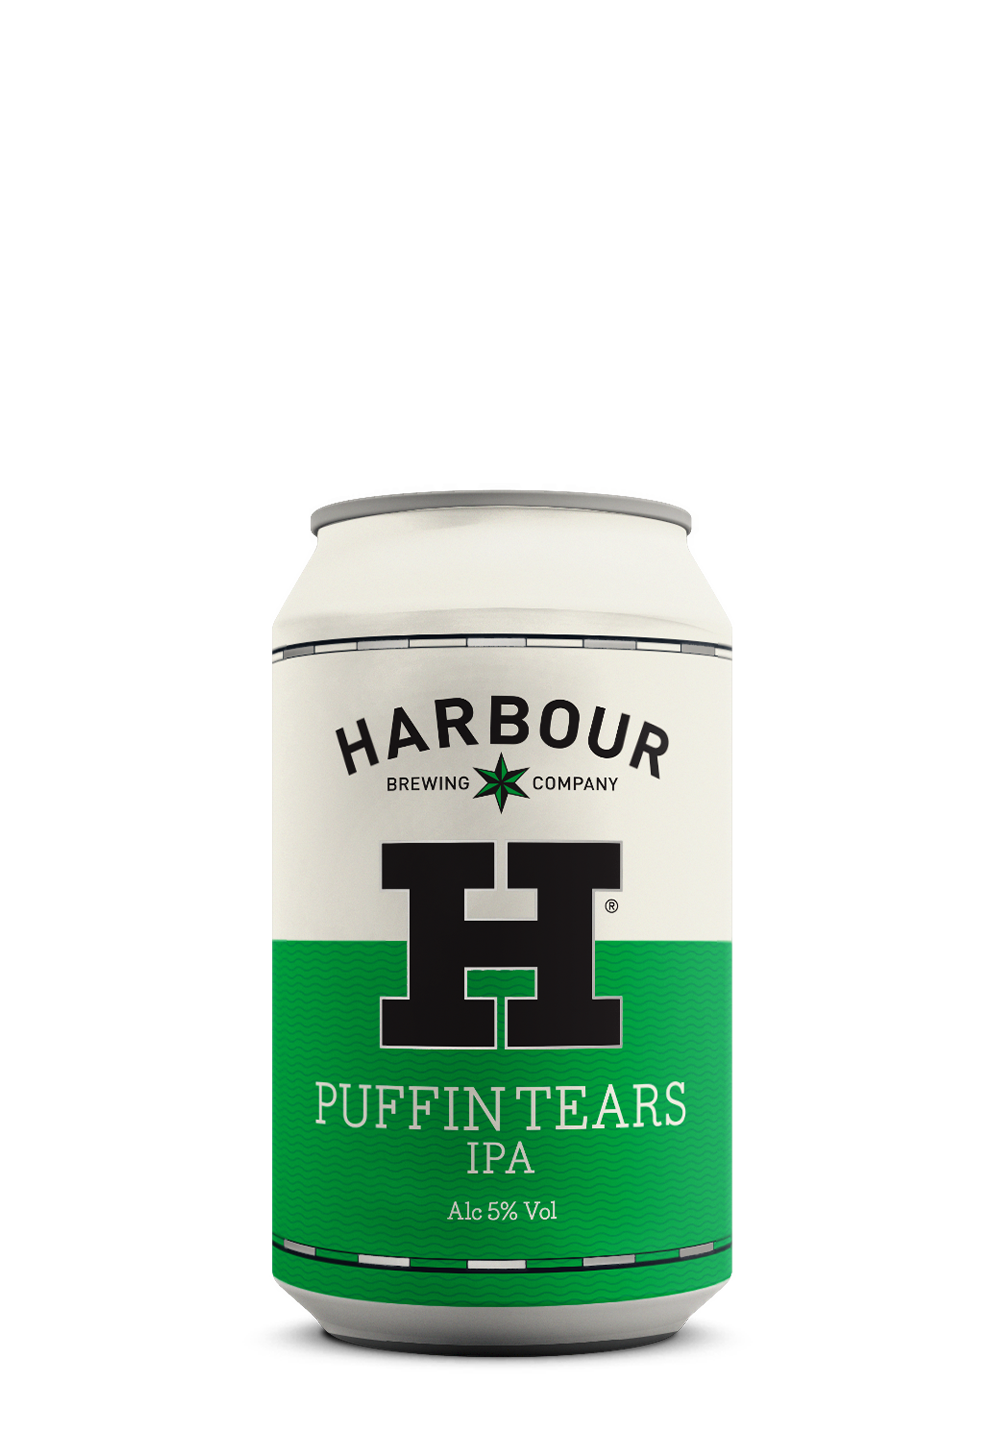 Puffin Tears IPA